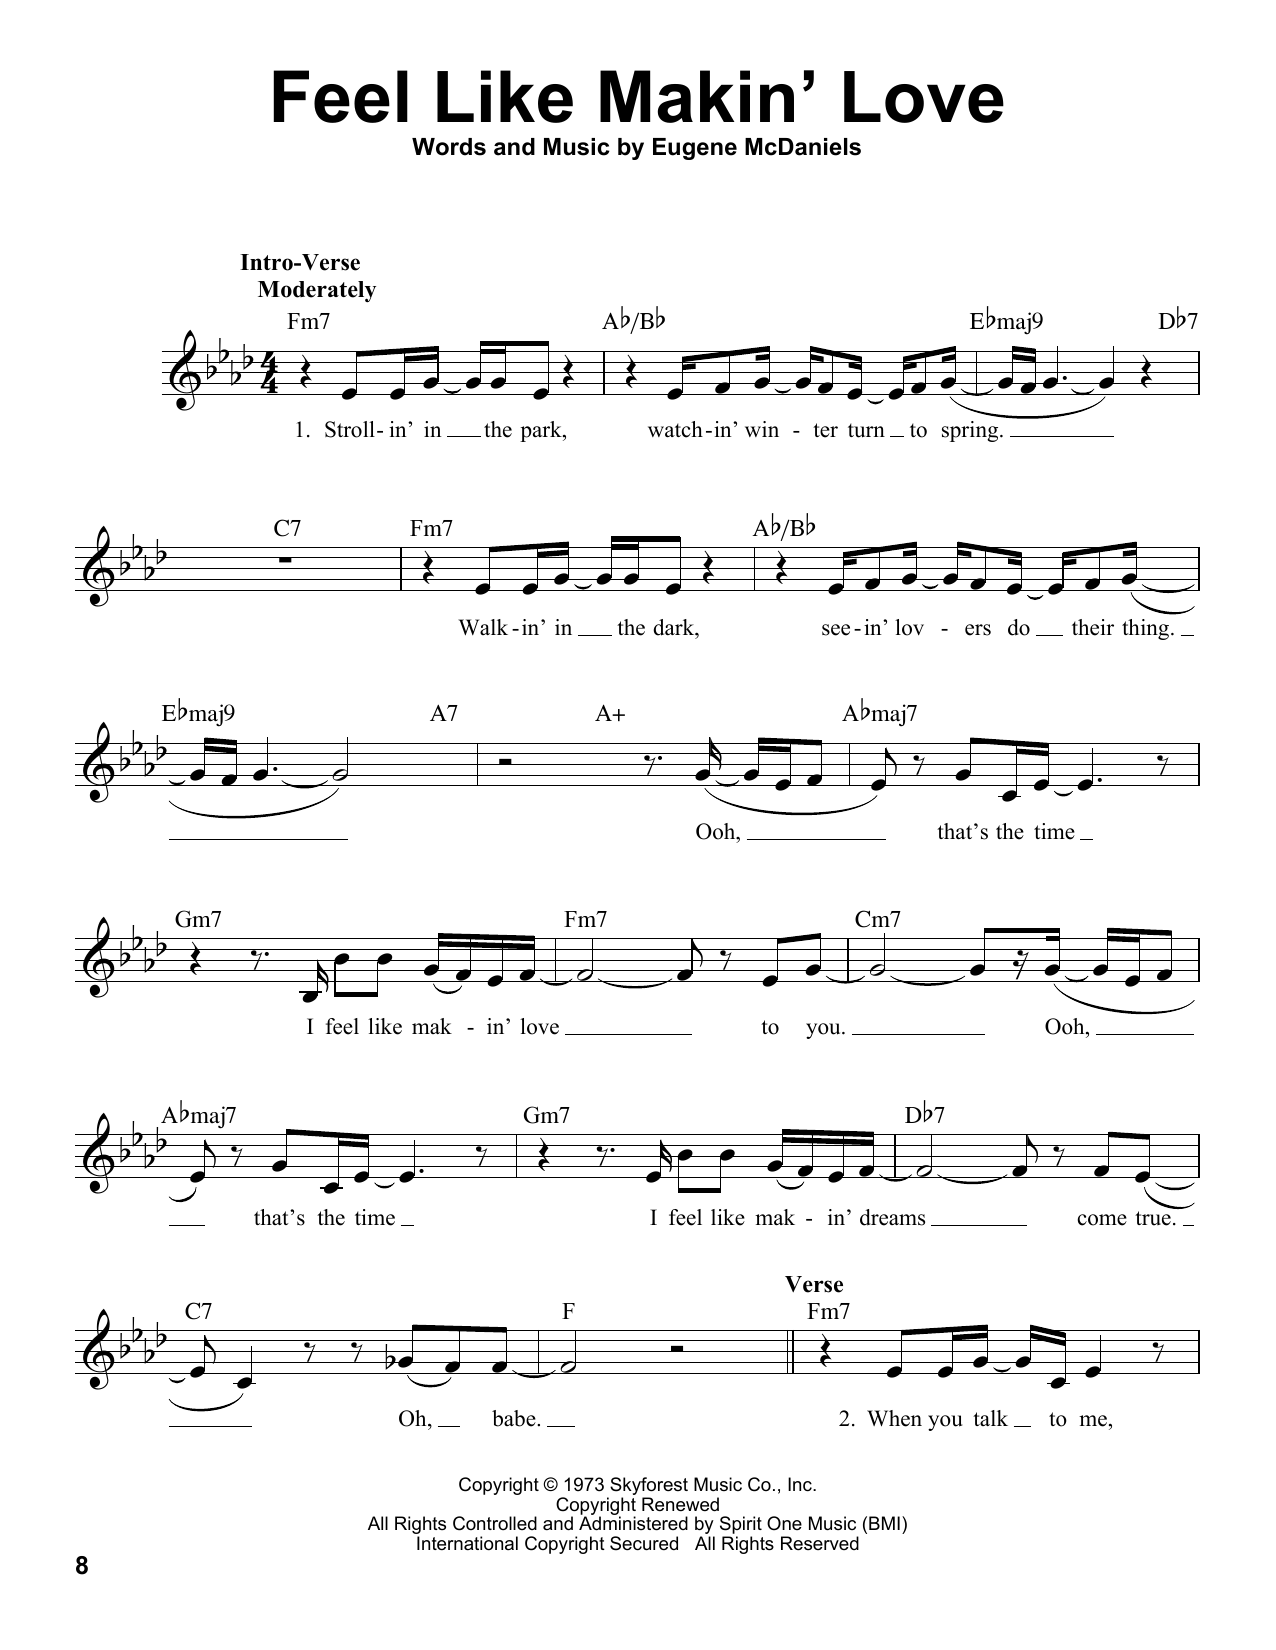 Feel Like Makin' Love Sheet Music